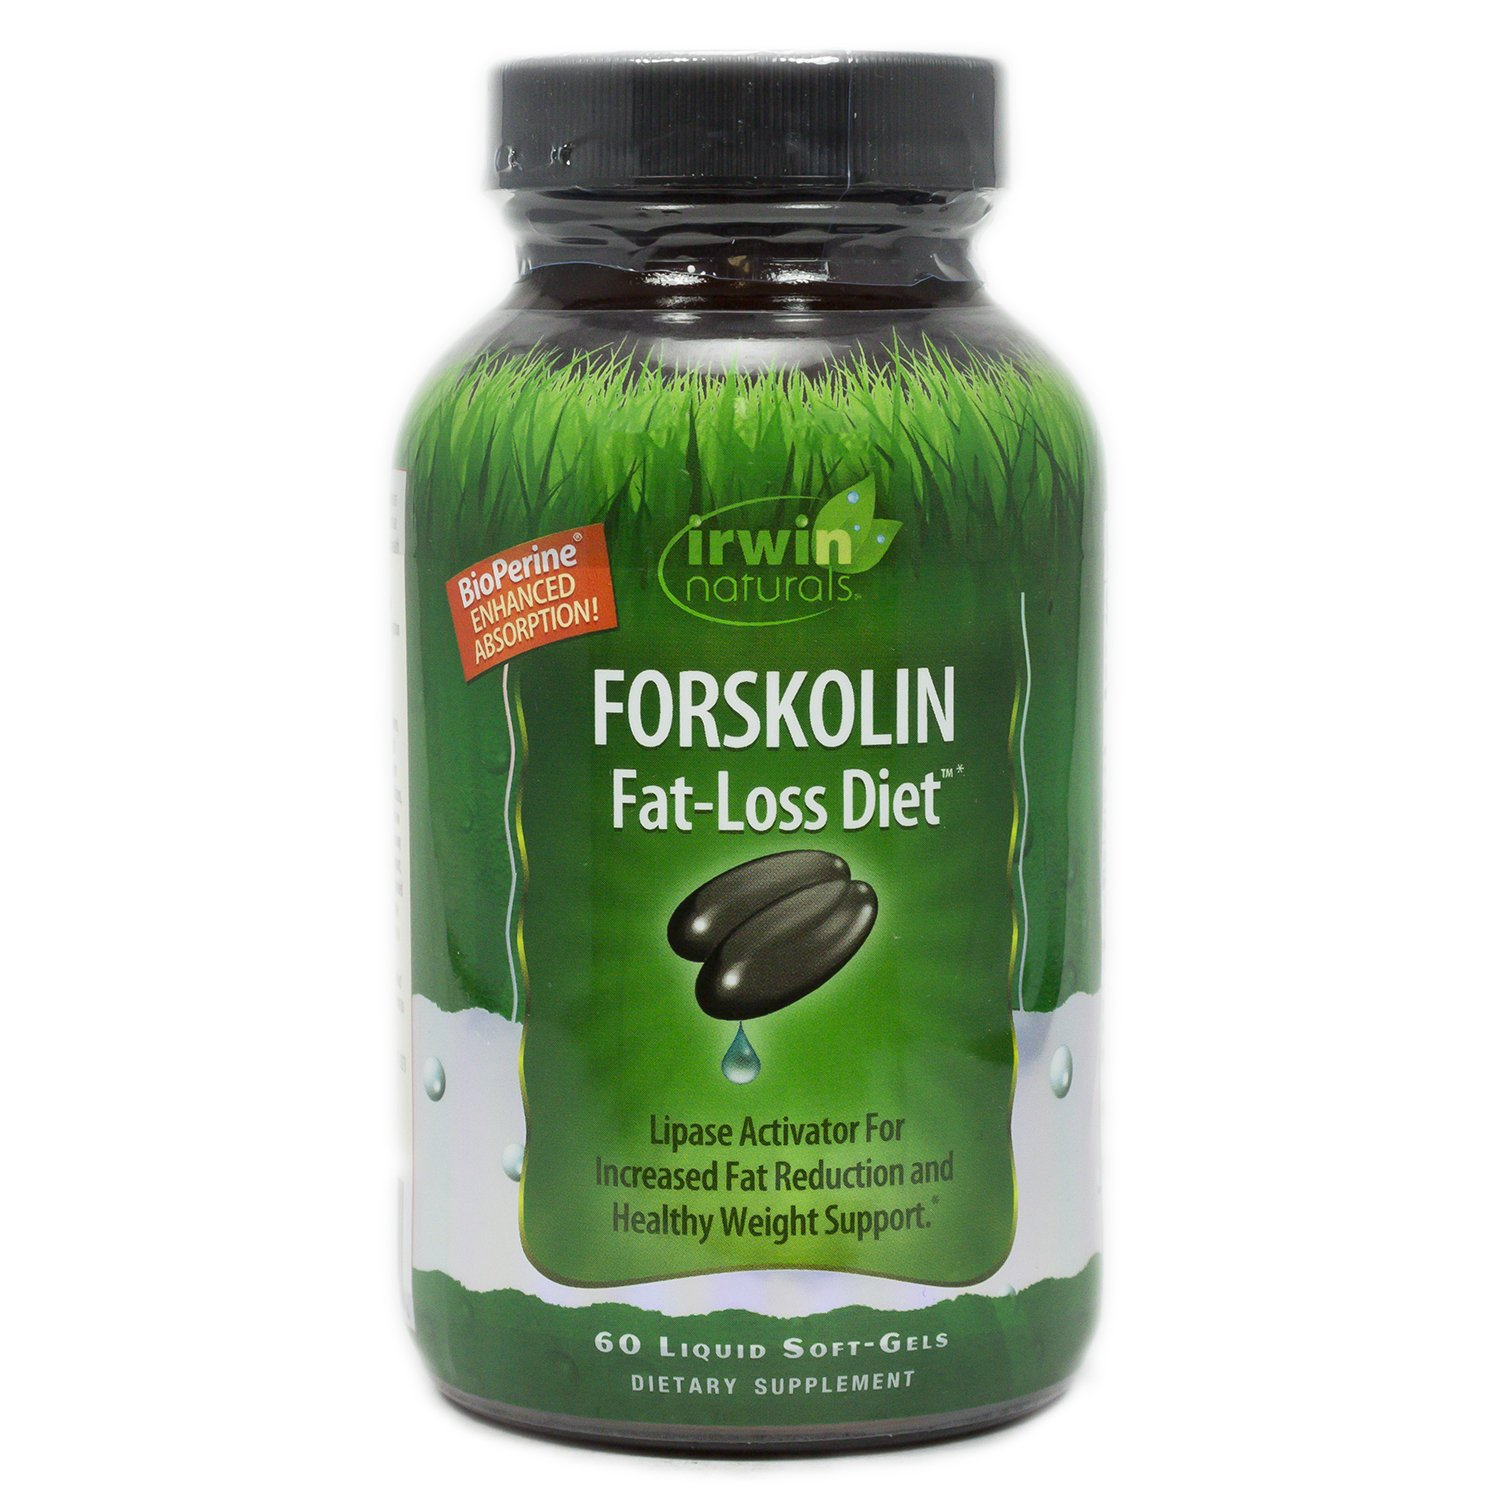 Forskolin Diet Activator by Irwin Naturals for Healthy Weight Support, 60 Liquid Soft-Gels by Irwin Naturals